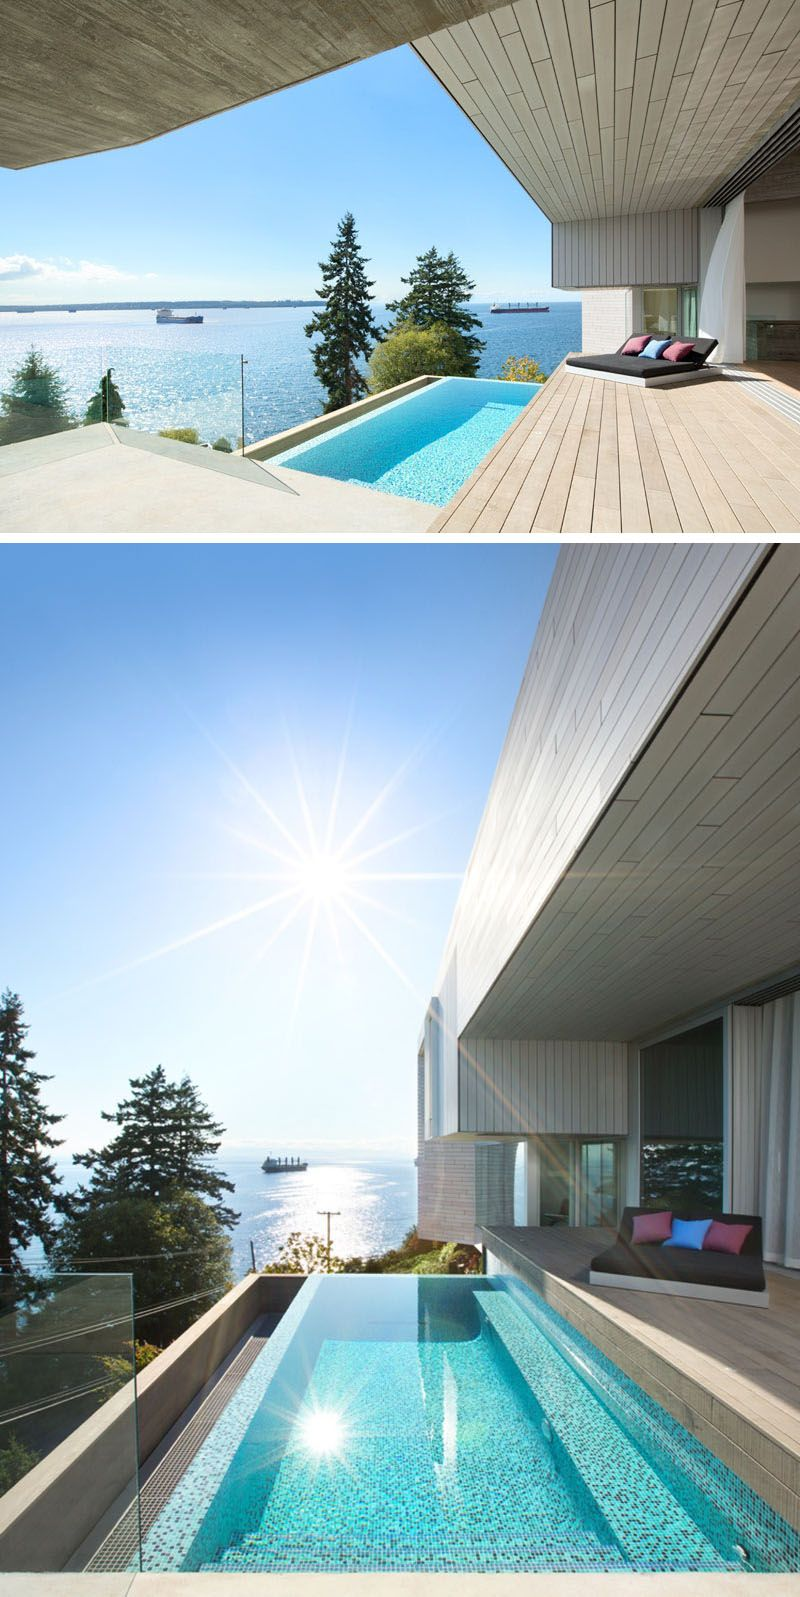 A concrete platform off the wooden deck of this modern house, guides you down to the small swimming pool (plunge pool), that is perfect for enjoying the ocean views.